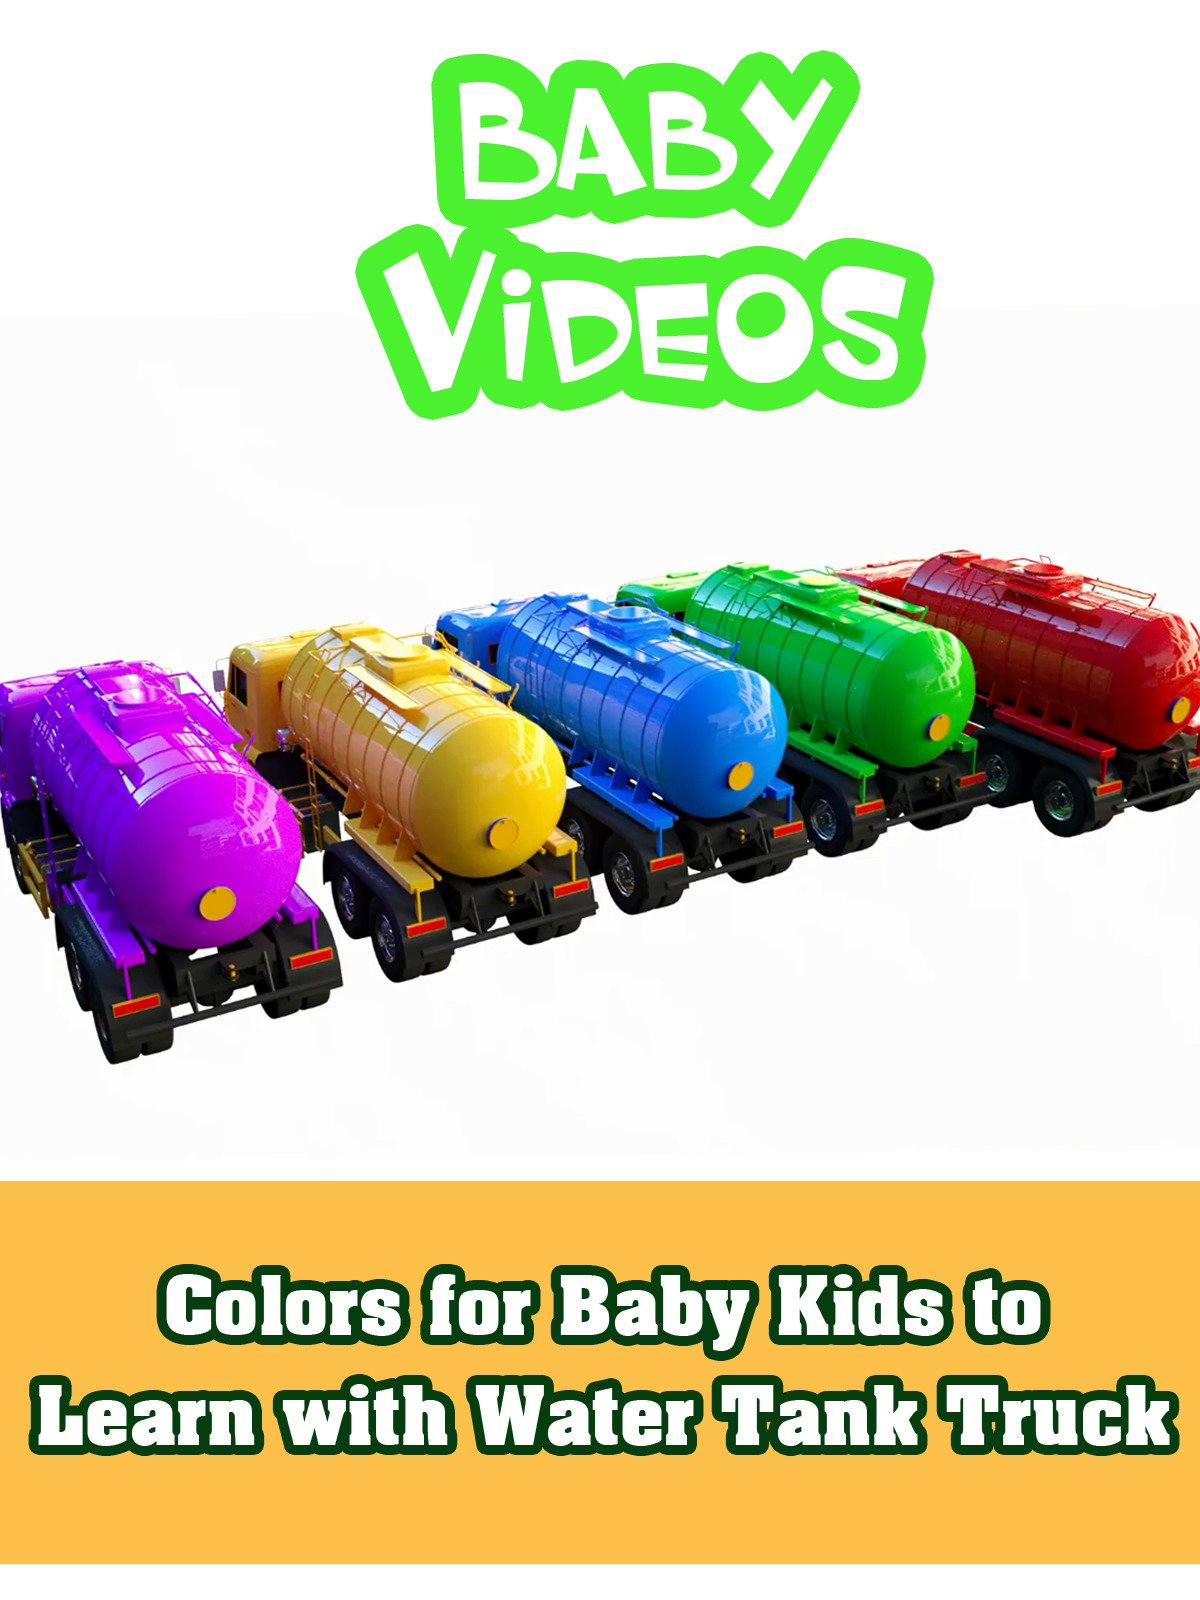 Colors for Baby Kids to Learn with Water Tank Truck